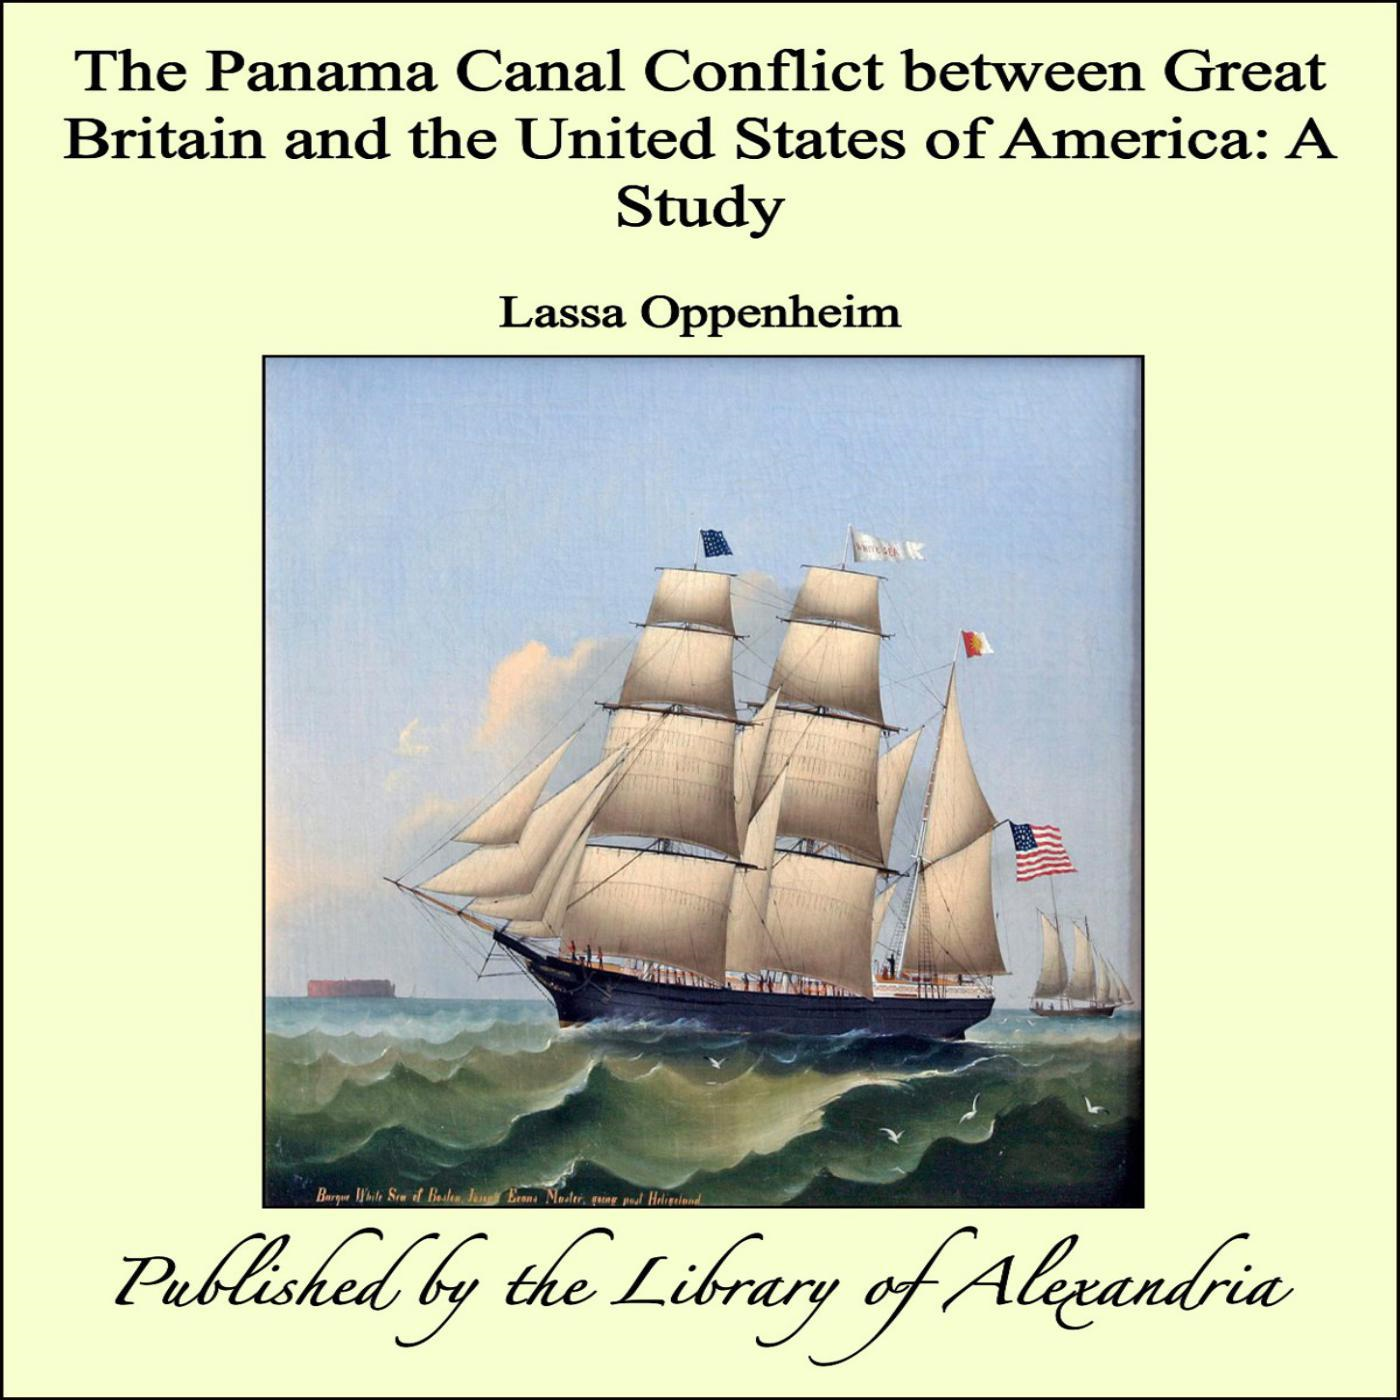 The Panama Canal Conflict between Great Britain and the United States of America: A Study By: Lassa Oppenheim